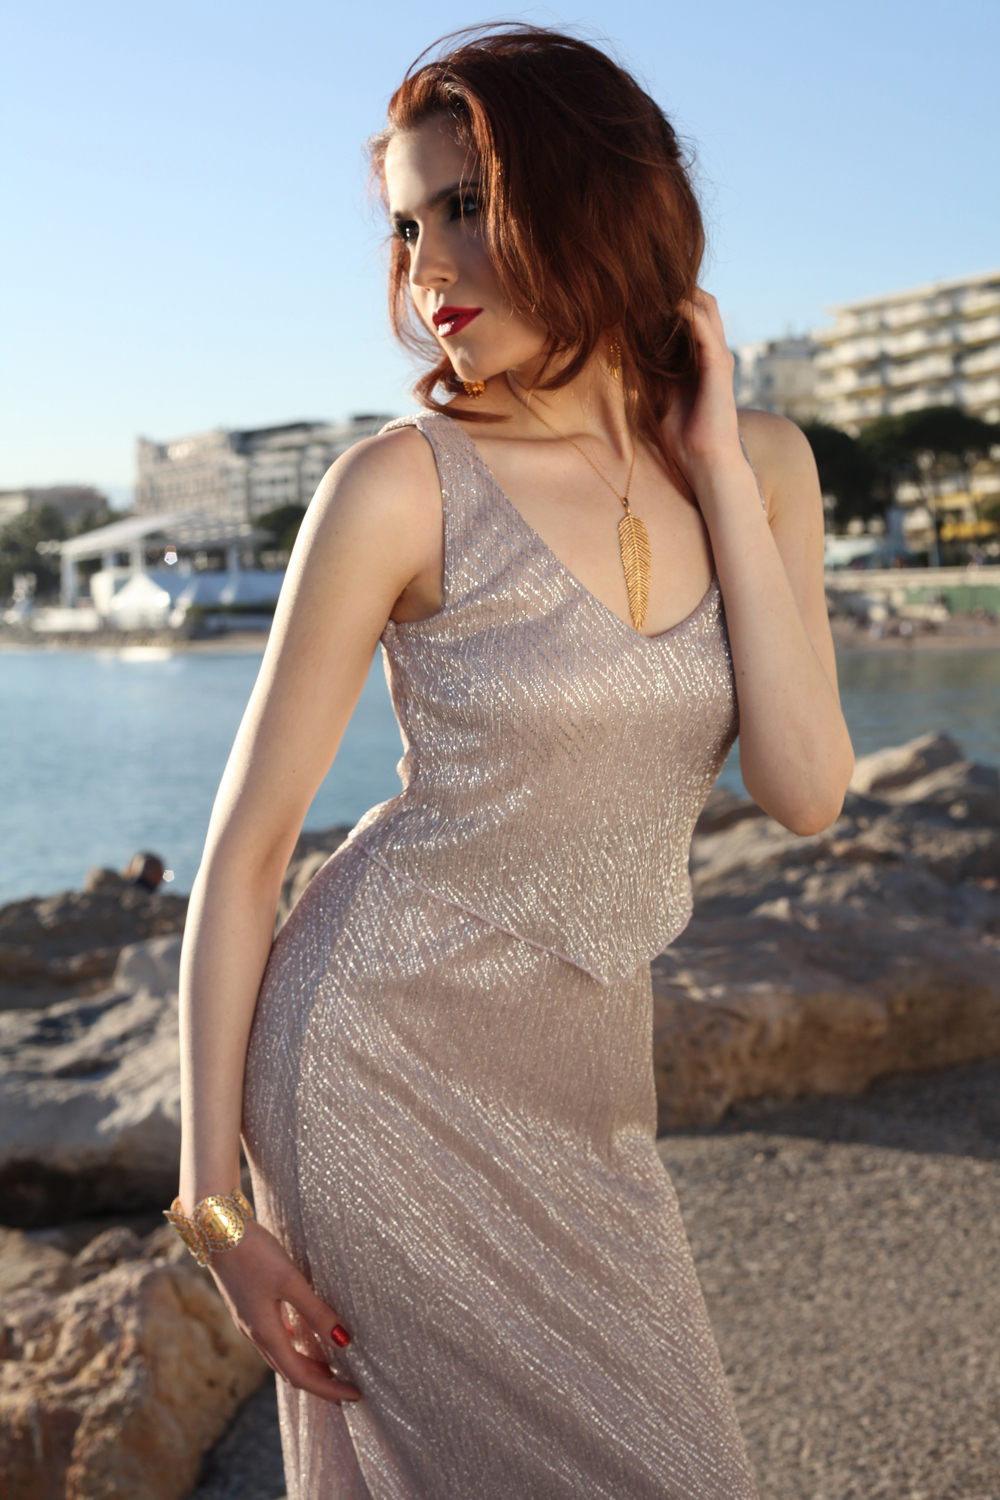 Cannes Promenade Photo Shoot May 2015 Professional Photo (122).jpg